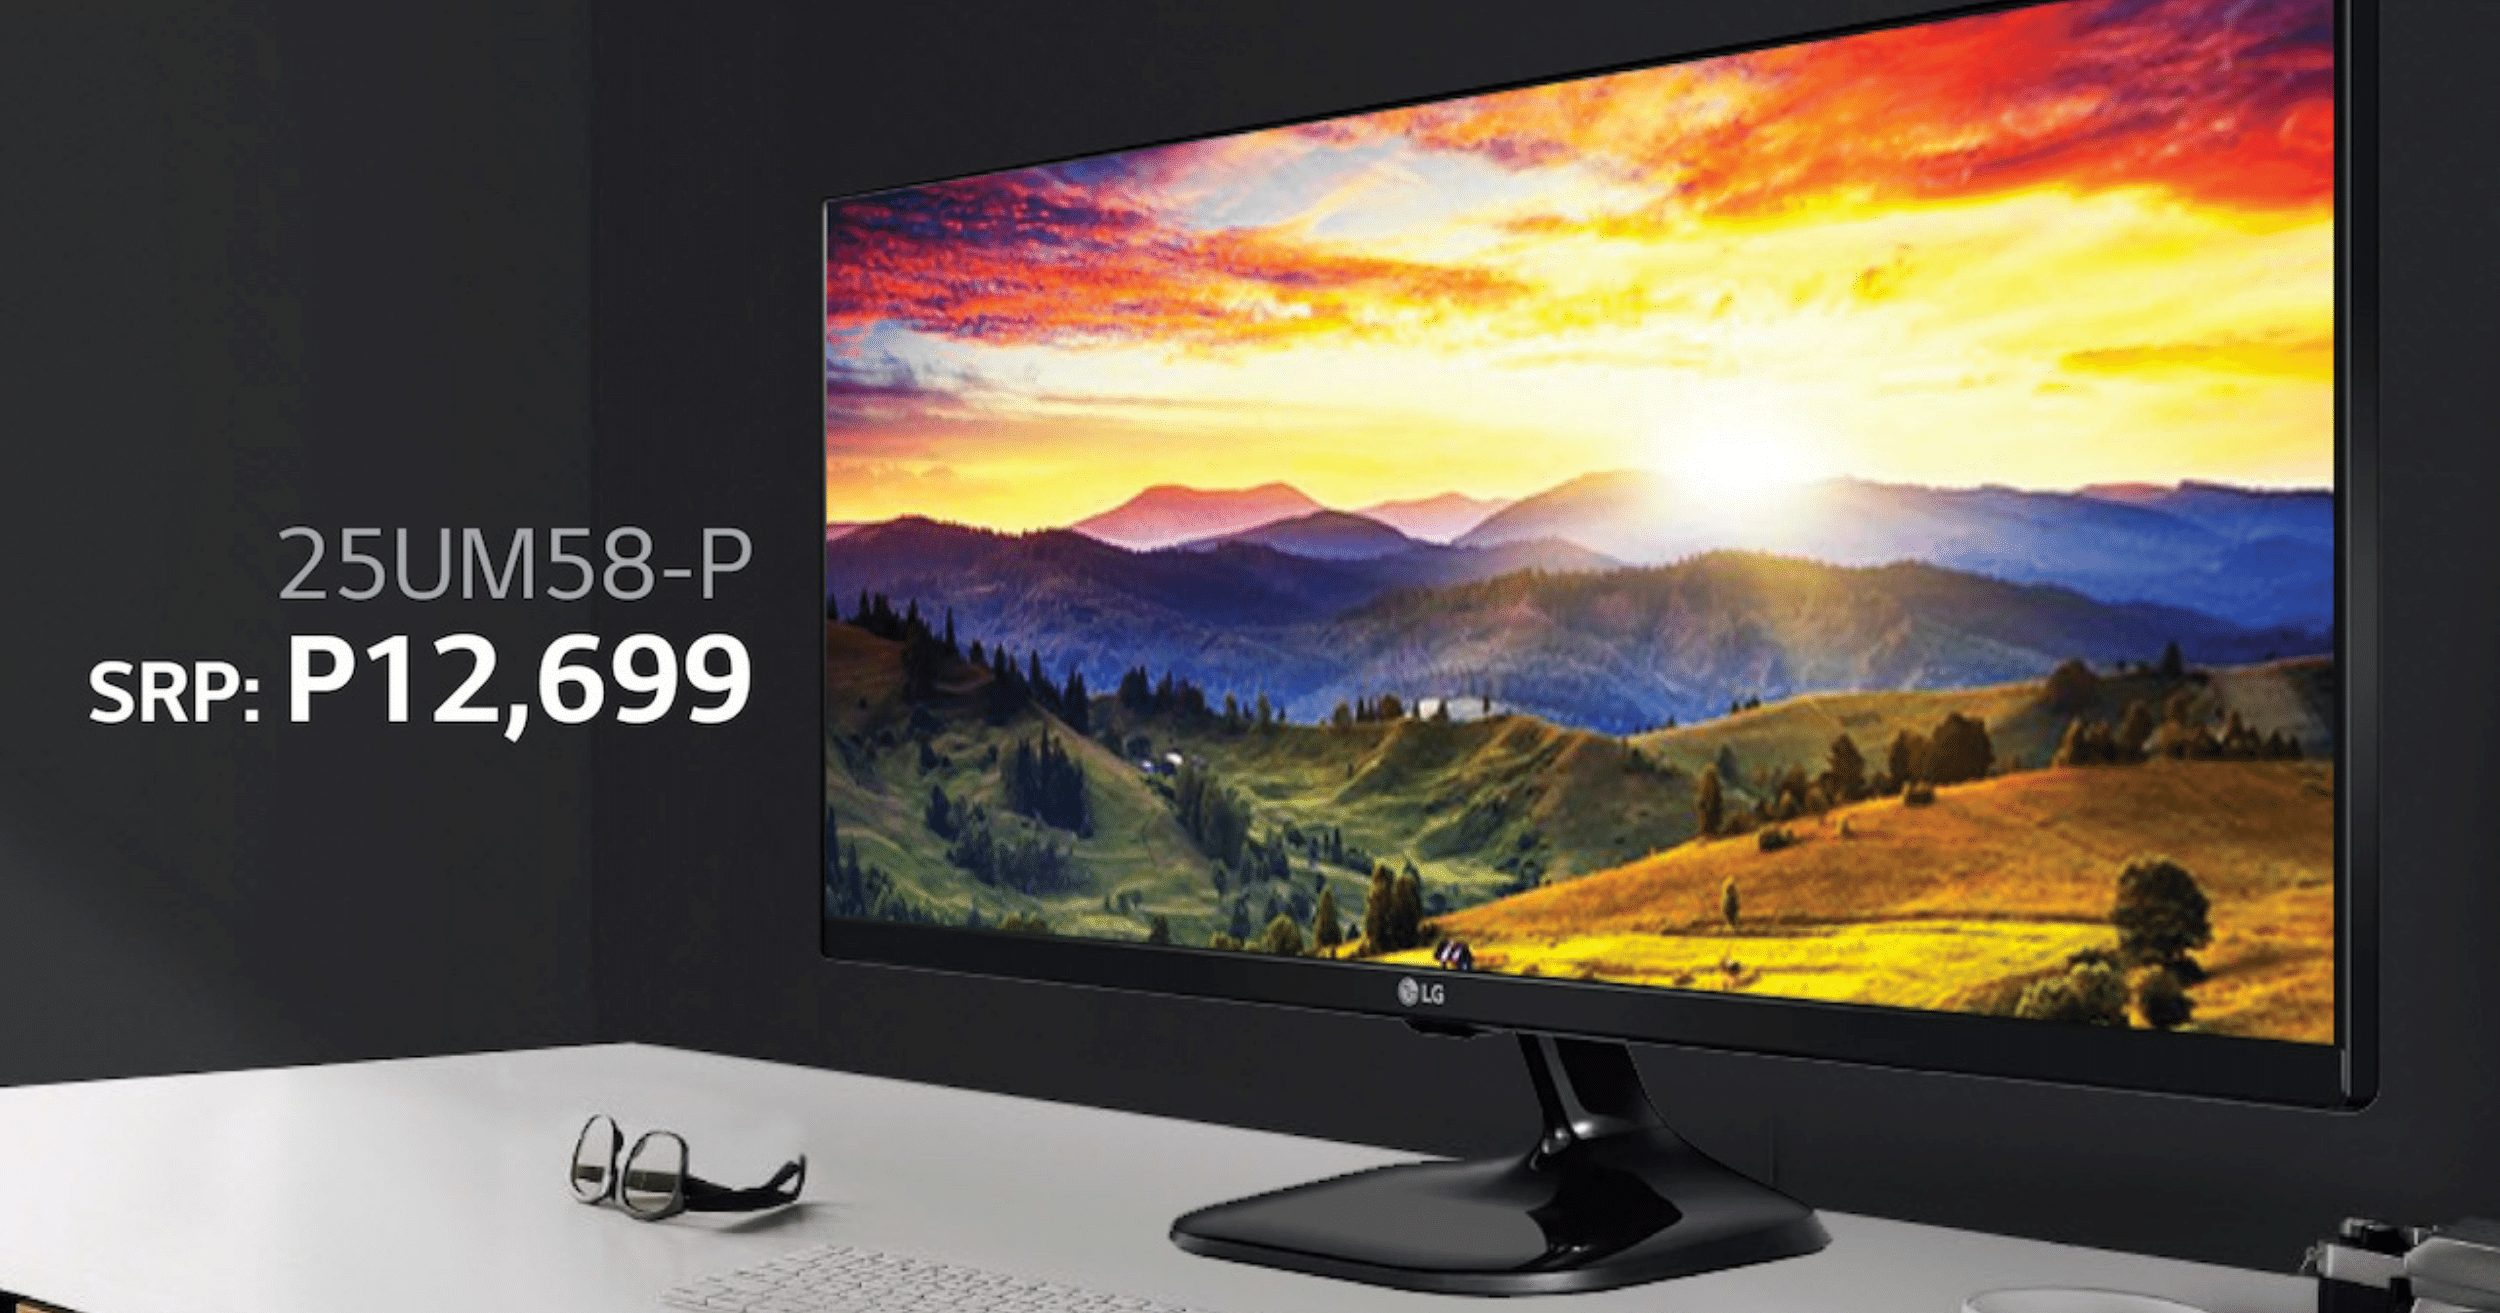 lgs-ultrawide-monitor-is-your-best-partner-for-work-play-in-this-pandemic